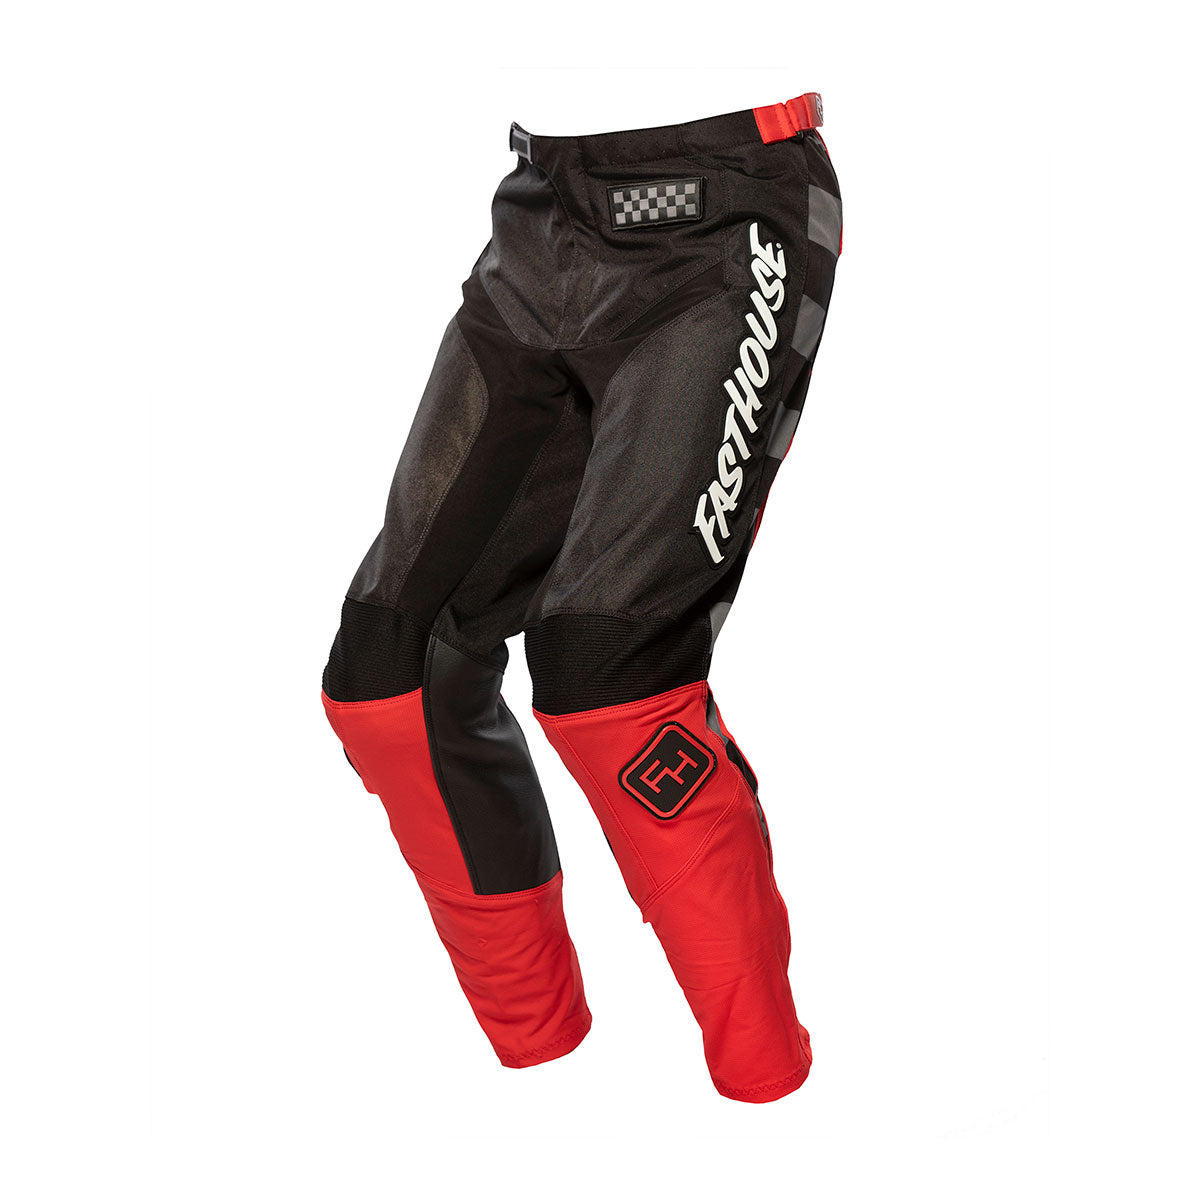 Grindhouse 2.0 Youth Pant - Black/Red